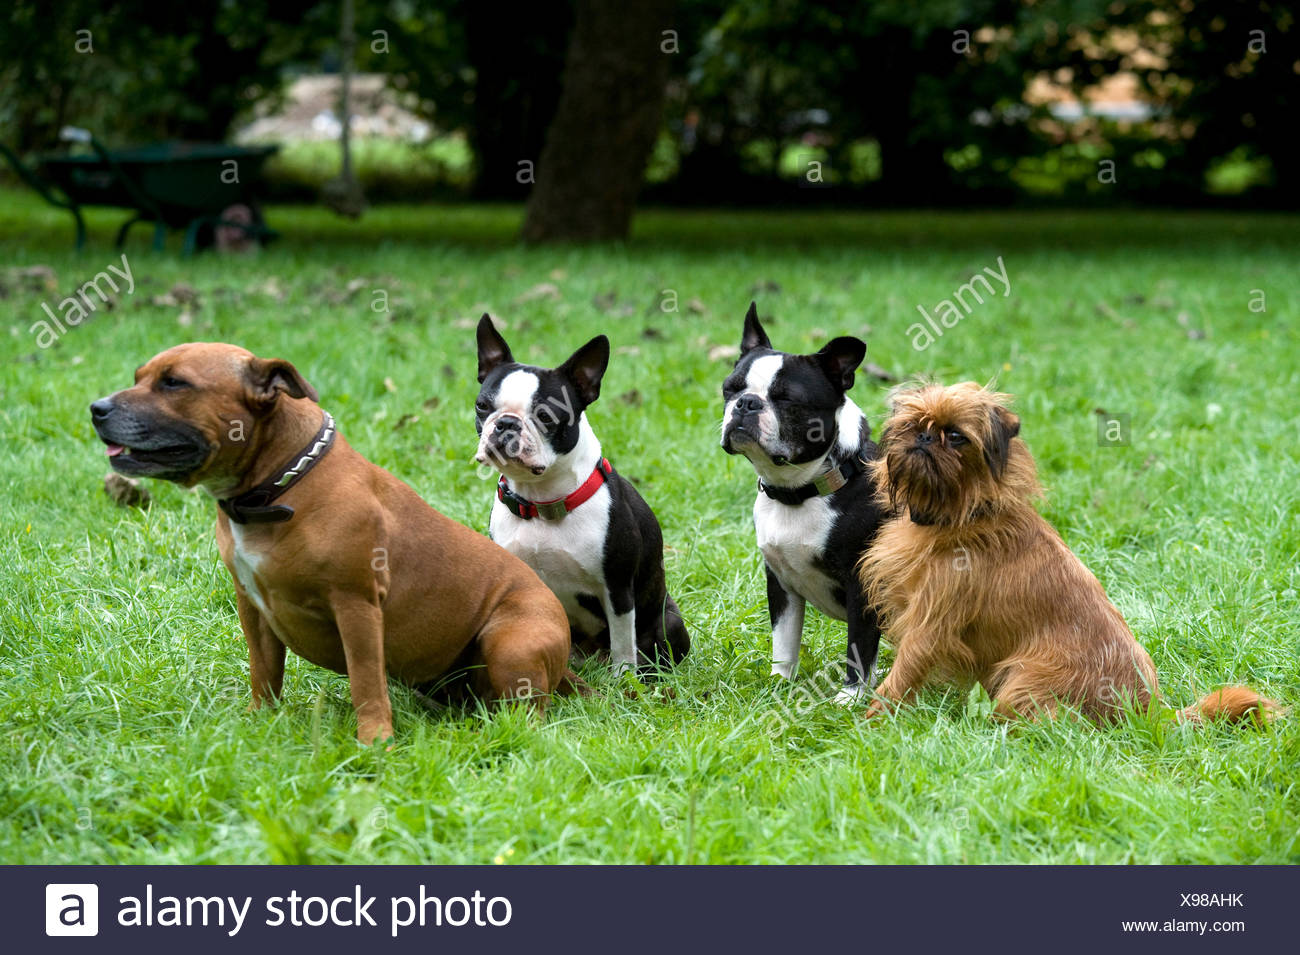 Staffordshire Bull Terrier, pair of Boston Terriers & Griffon Bruxellois / Griffon Belge, sitting together in garden, UK - Stock Image